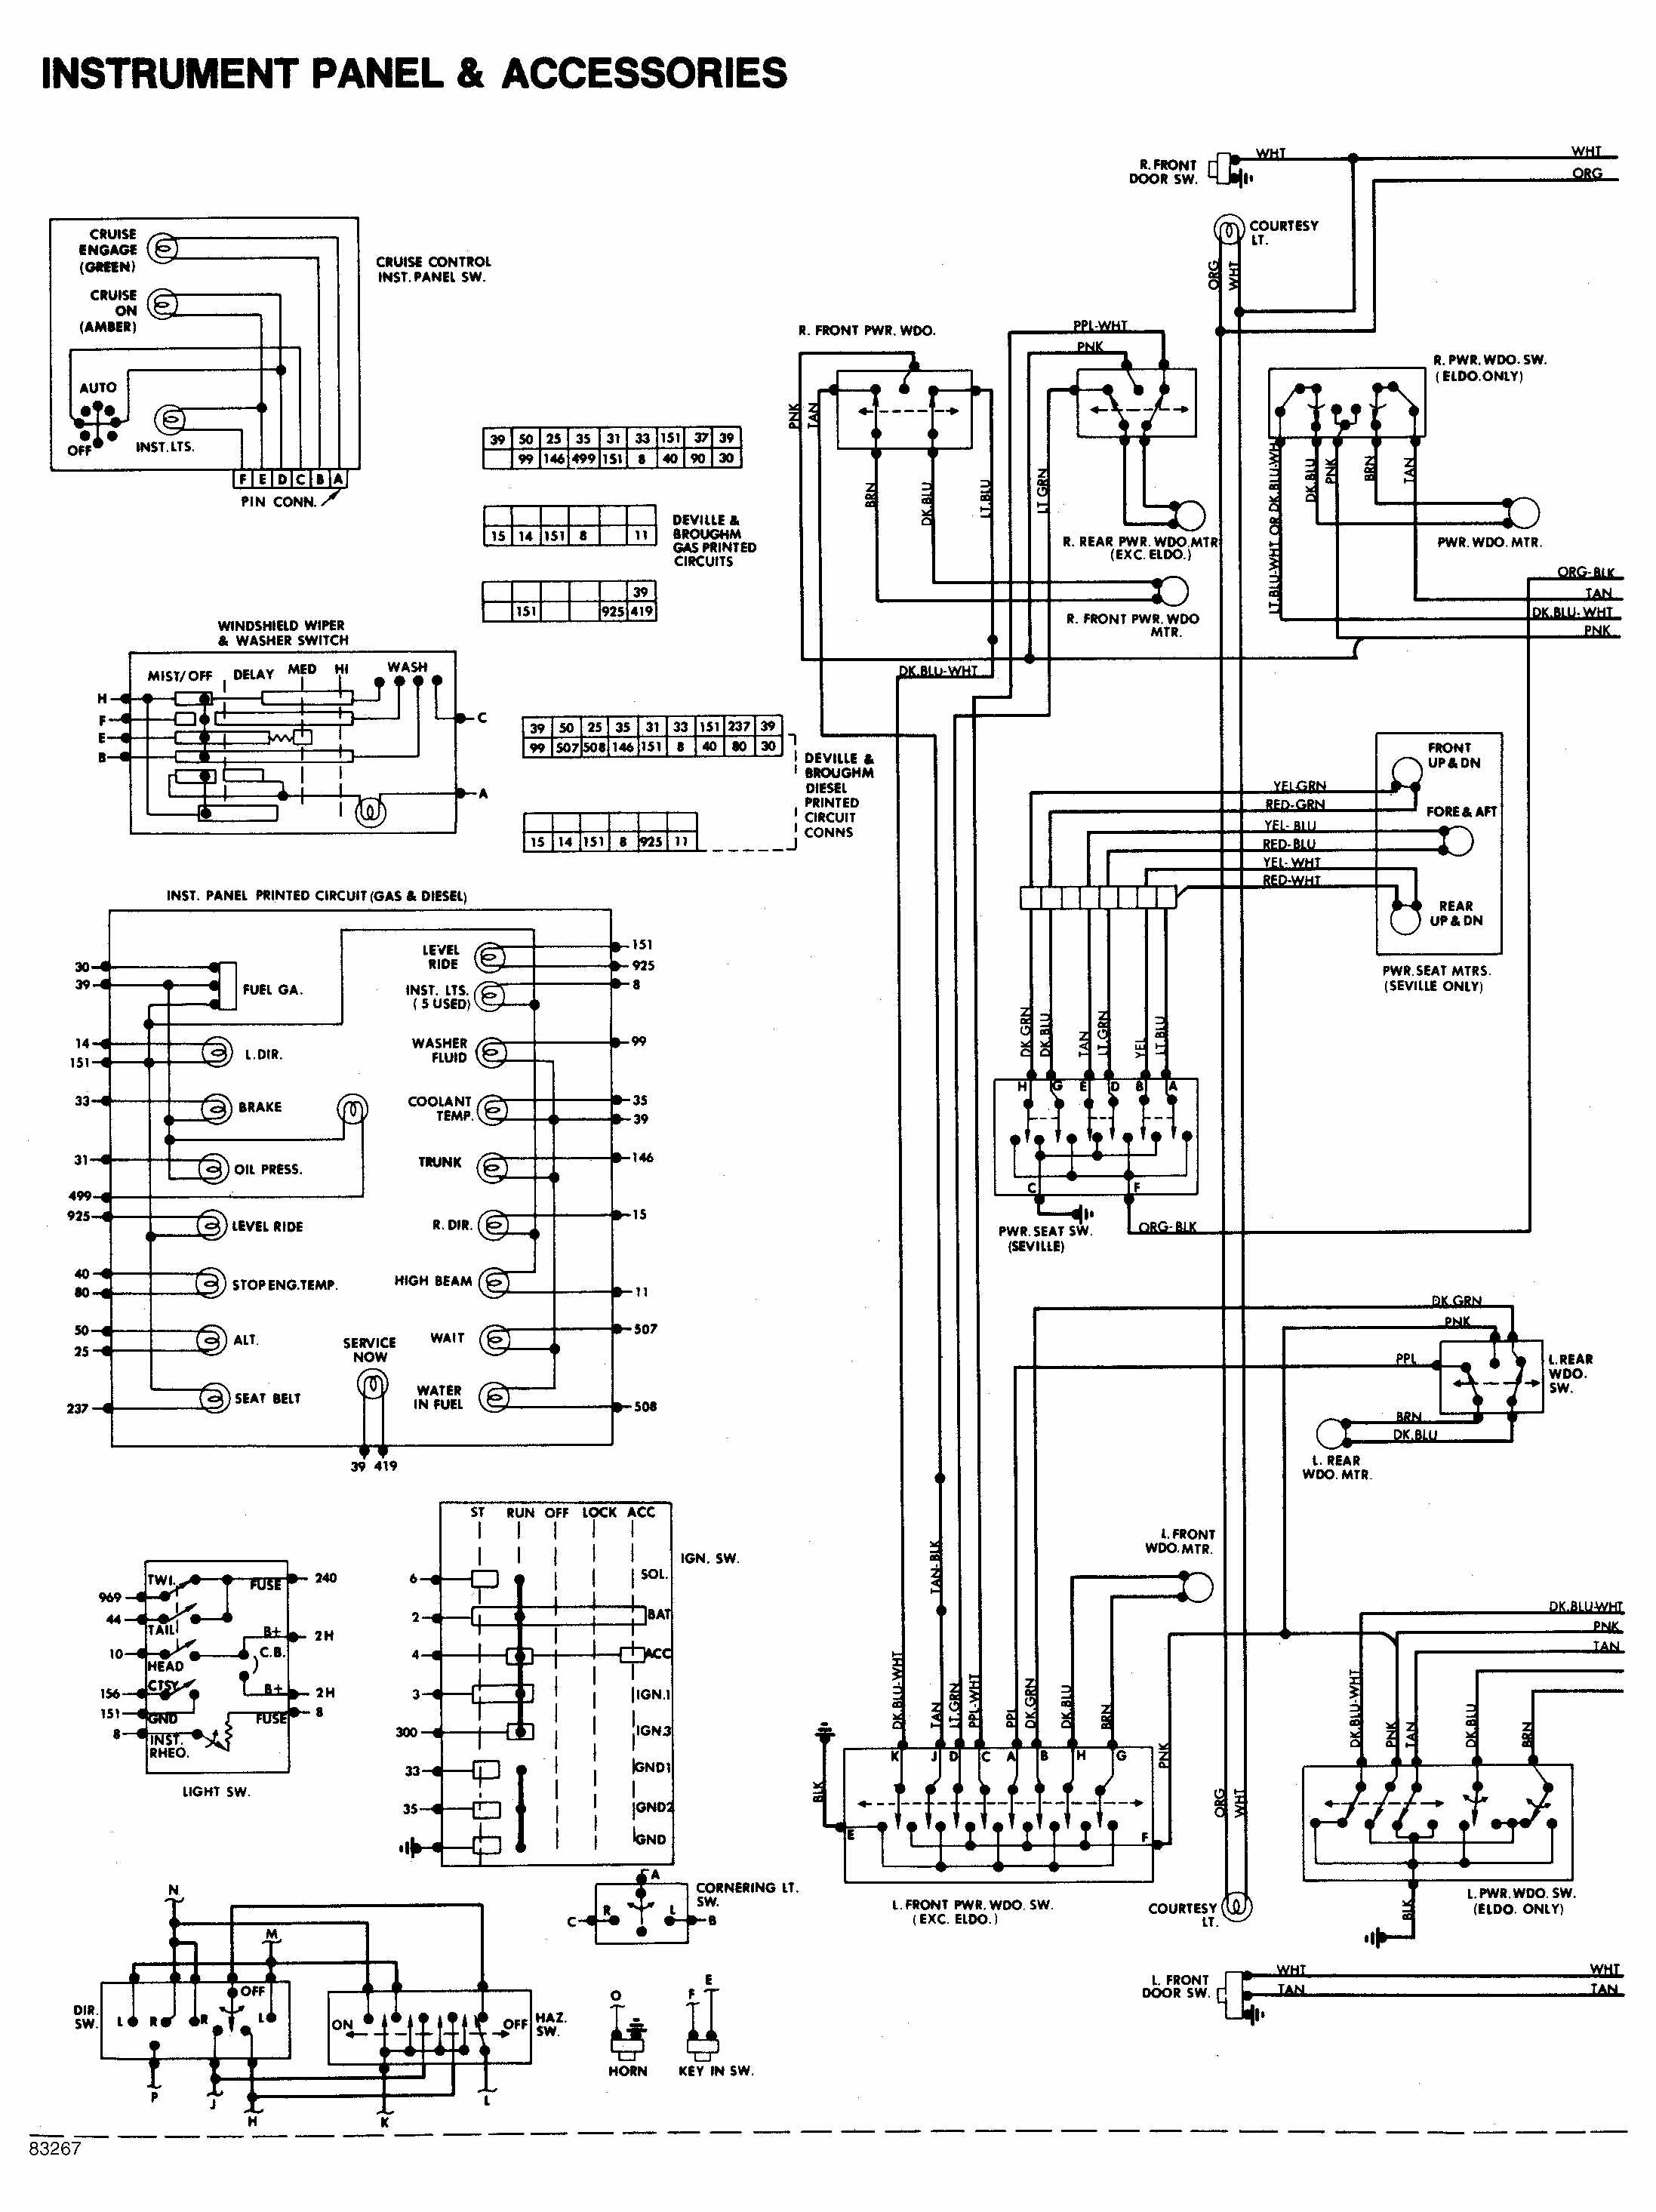 [SCHEMATICS_4FR]  1951 Ford Headlight Switch Wiring Diagram Wiring Diagram 1987 Suzuki  Samurai - bengkenang.sardaracomunitaospitale.it | 2106 Ford Headlight Wiring Diagram |  | Wiring Diagram and Schematics